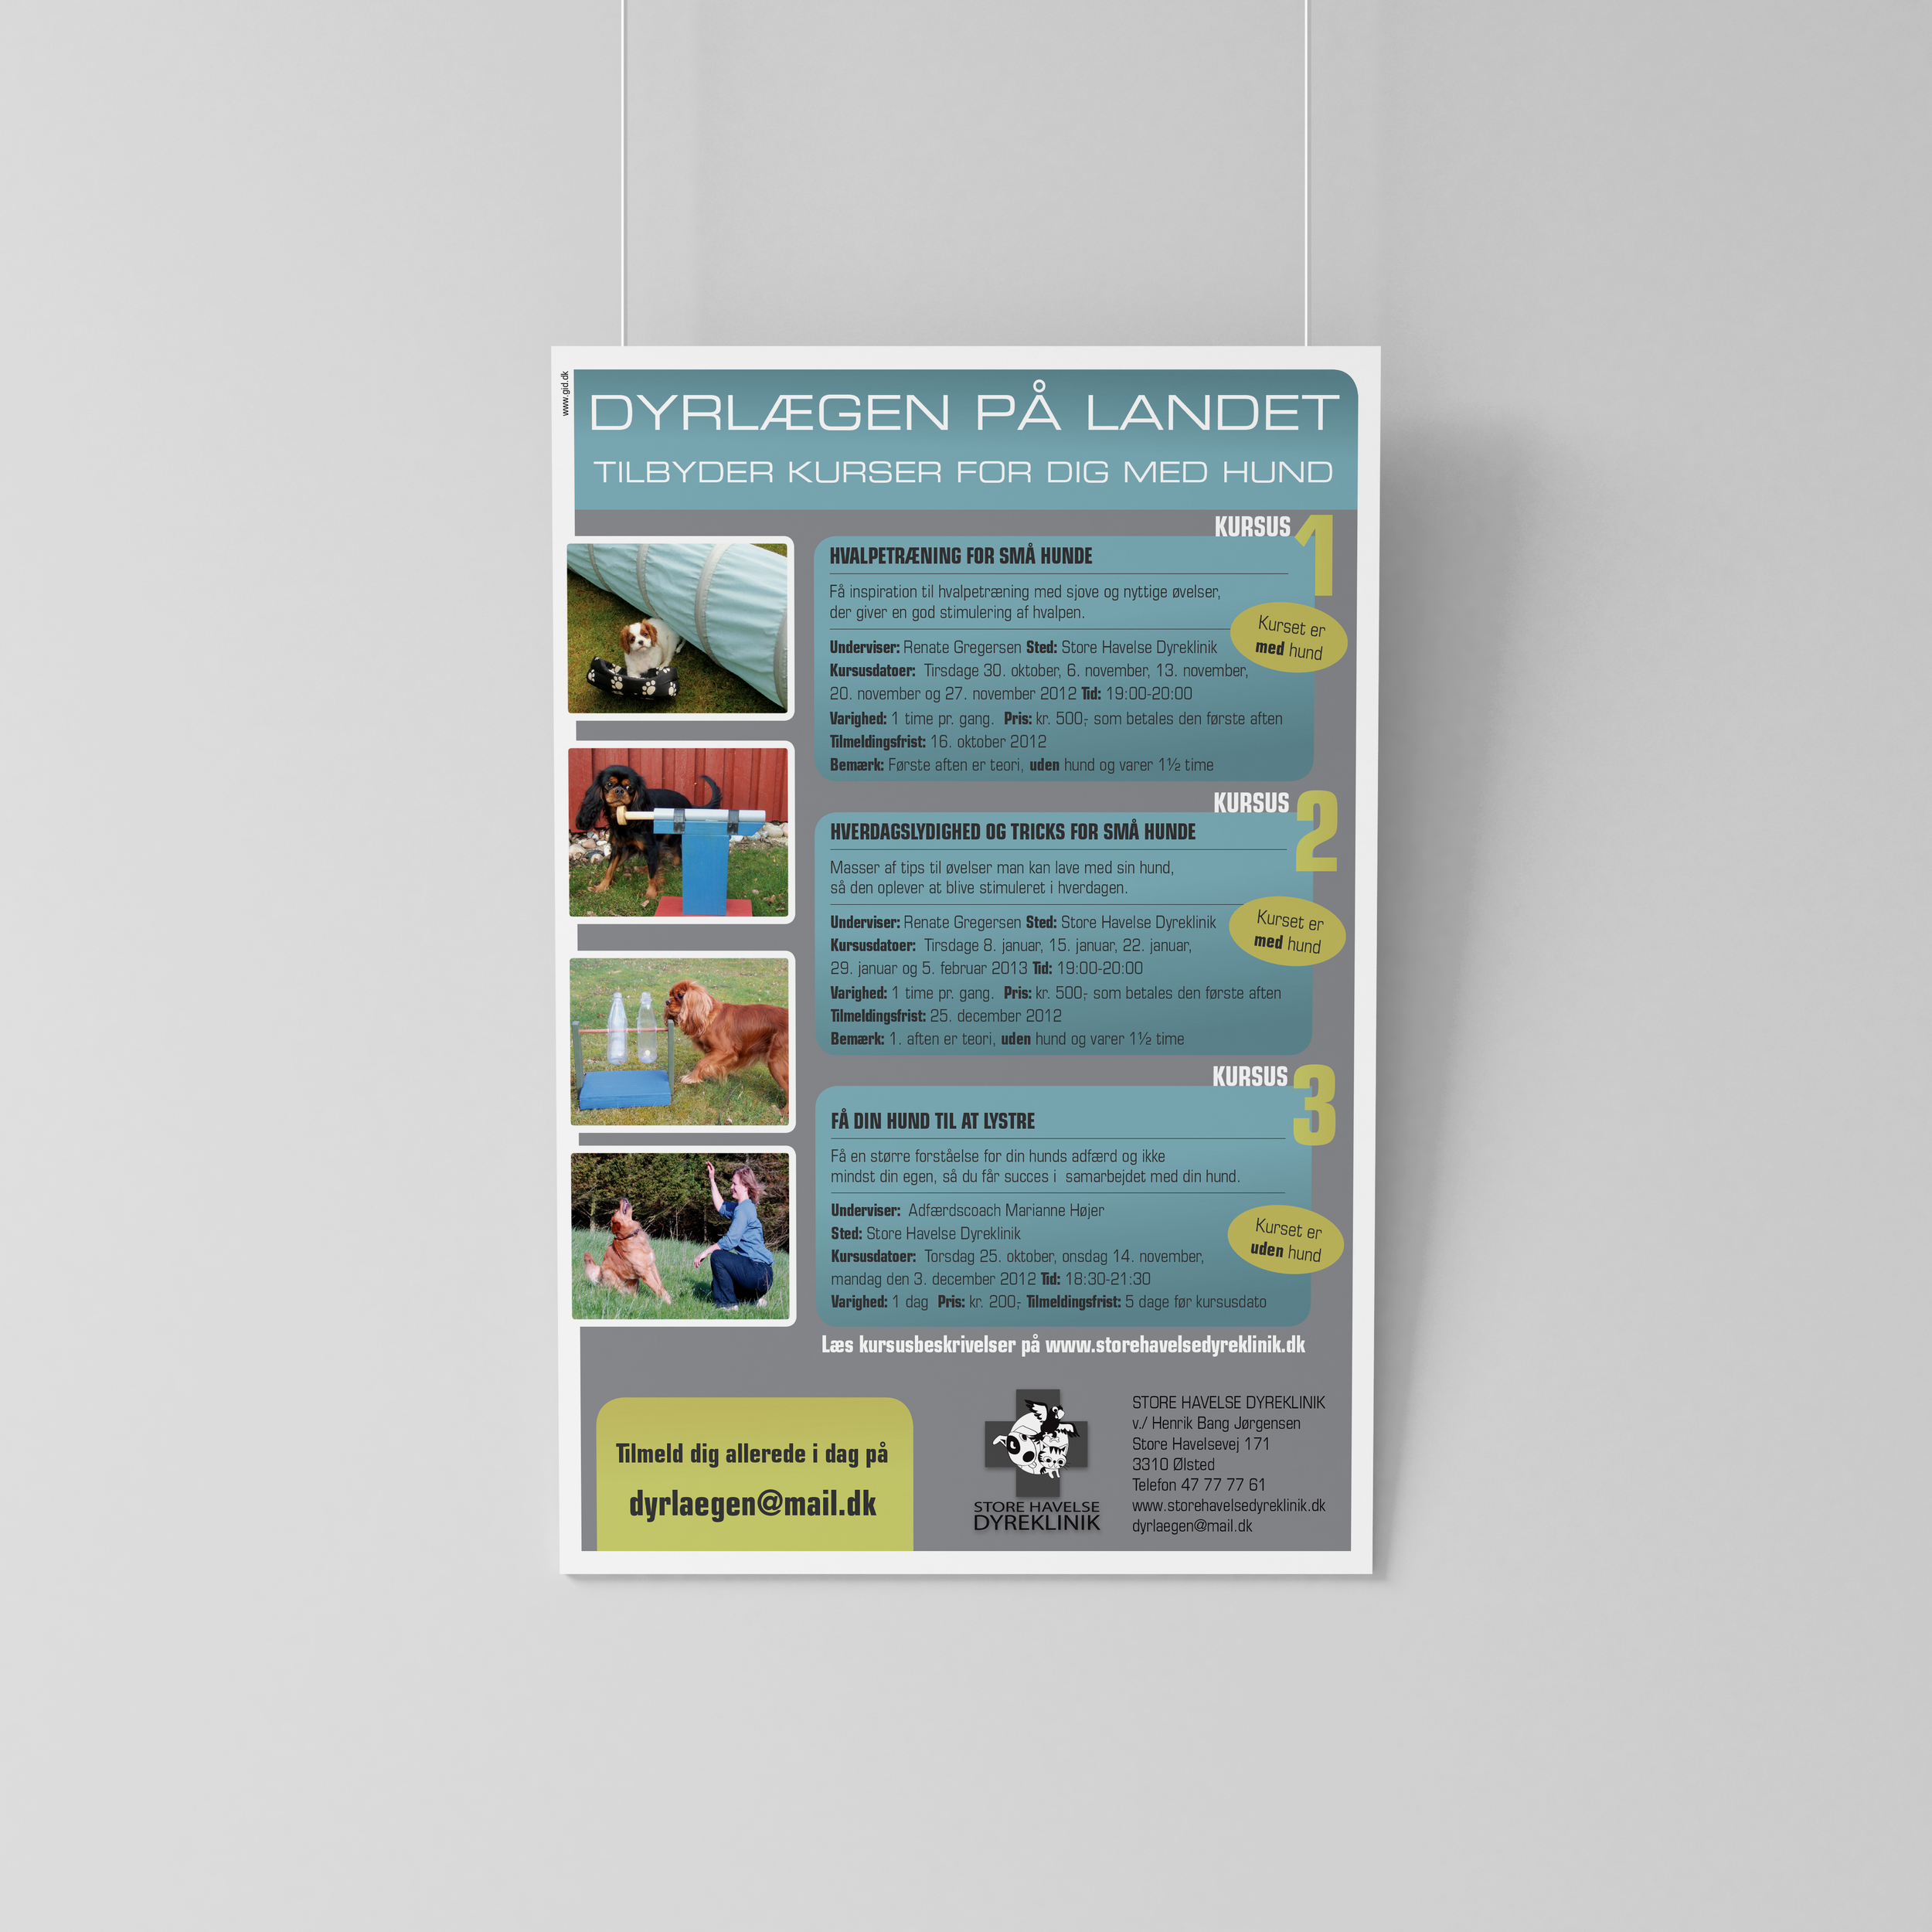 Plakat for STORE HAVELSE DYREKLINIK